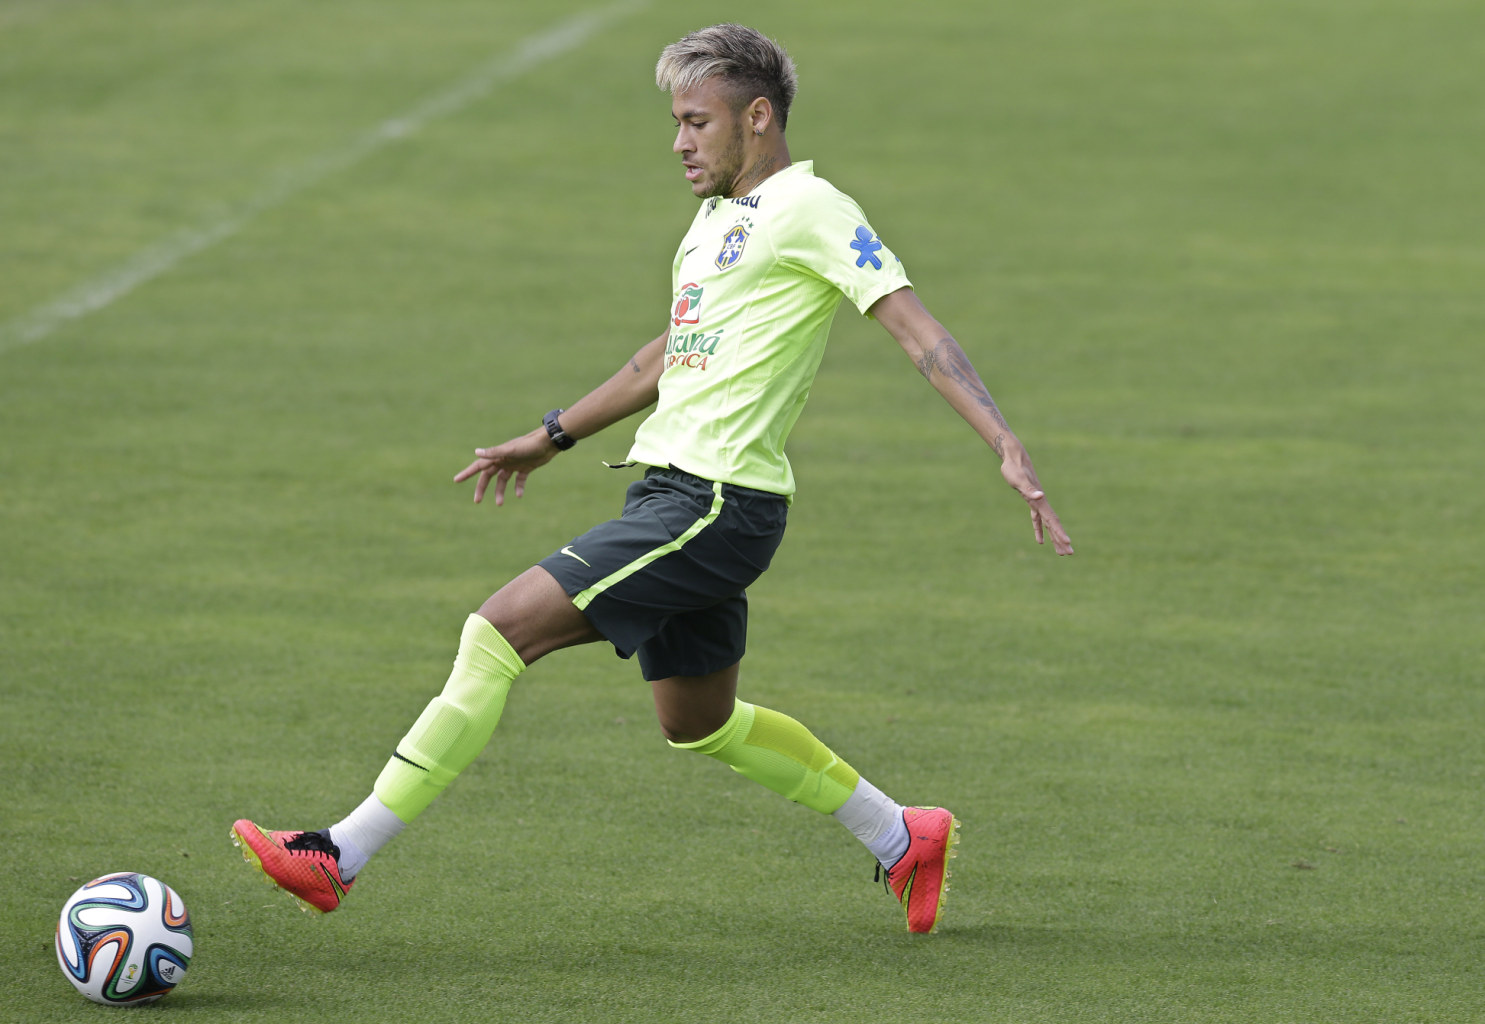 Neymar Shows Off A New Look And Hairstyle For The World